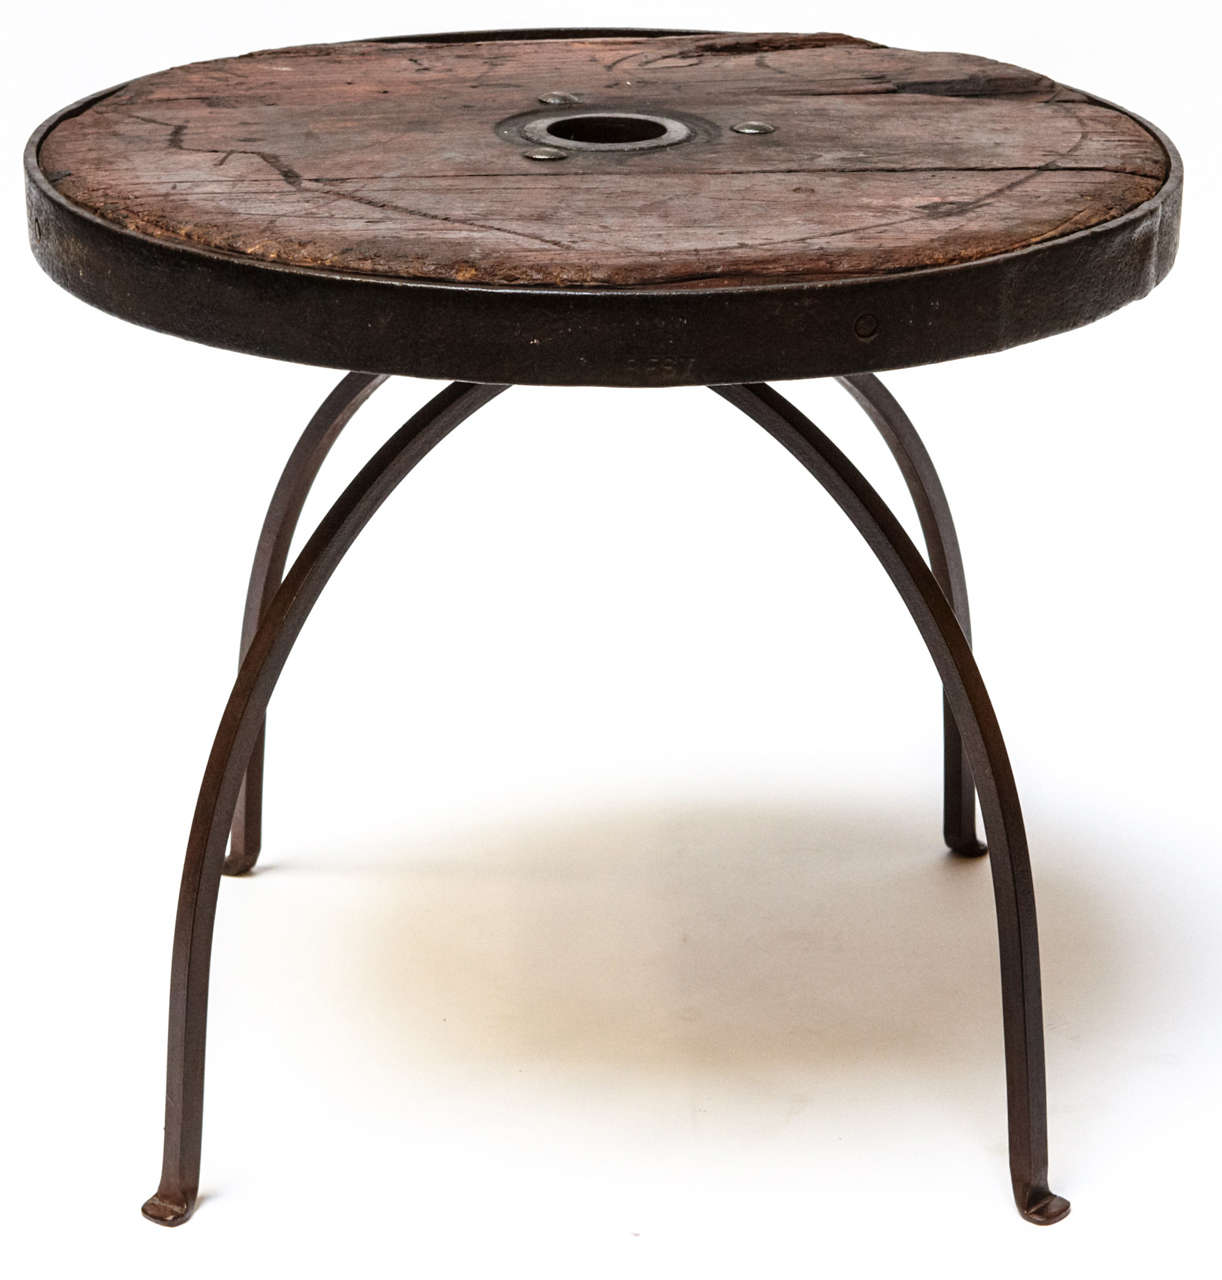 Unique Pair Of Italian Antique Wooden Wheels Table For Sale At 1stdibs